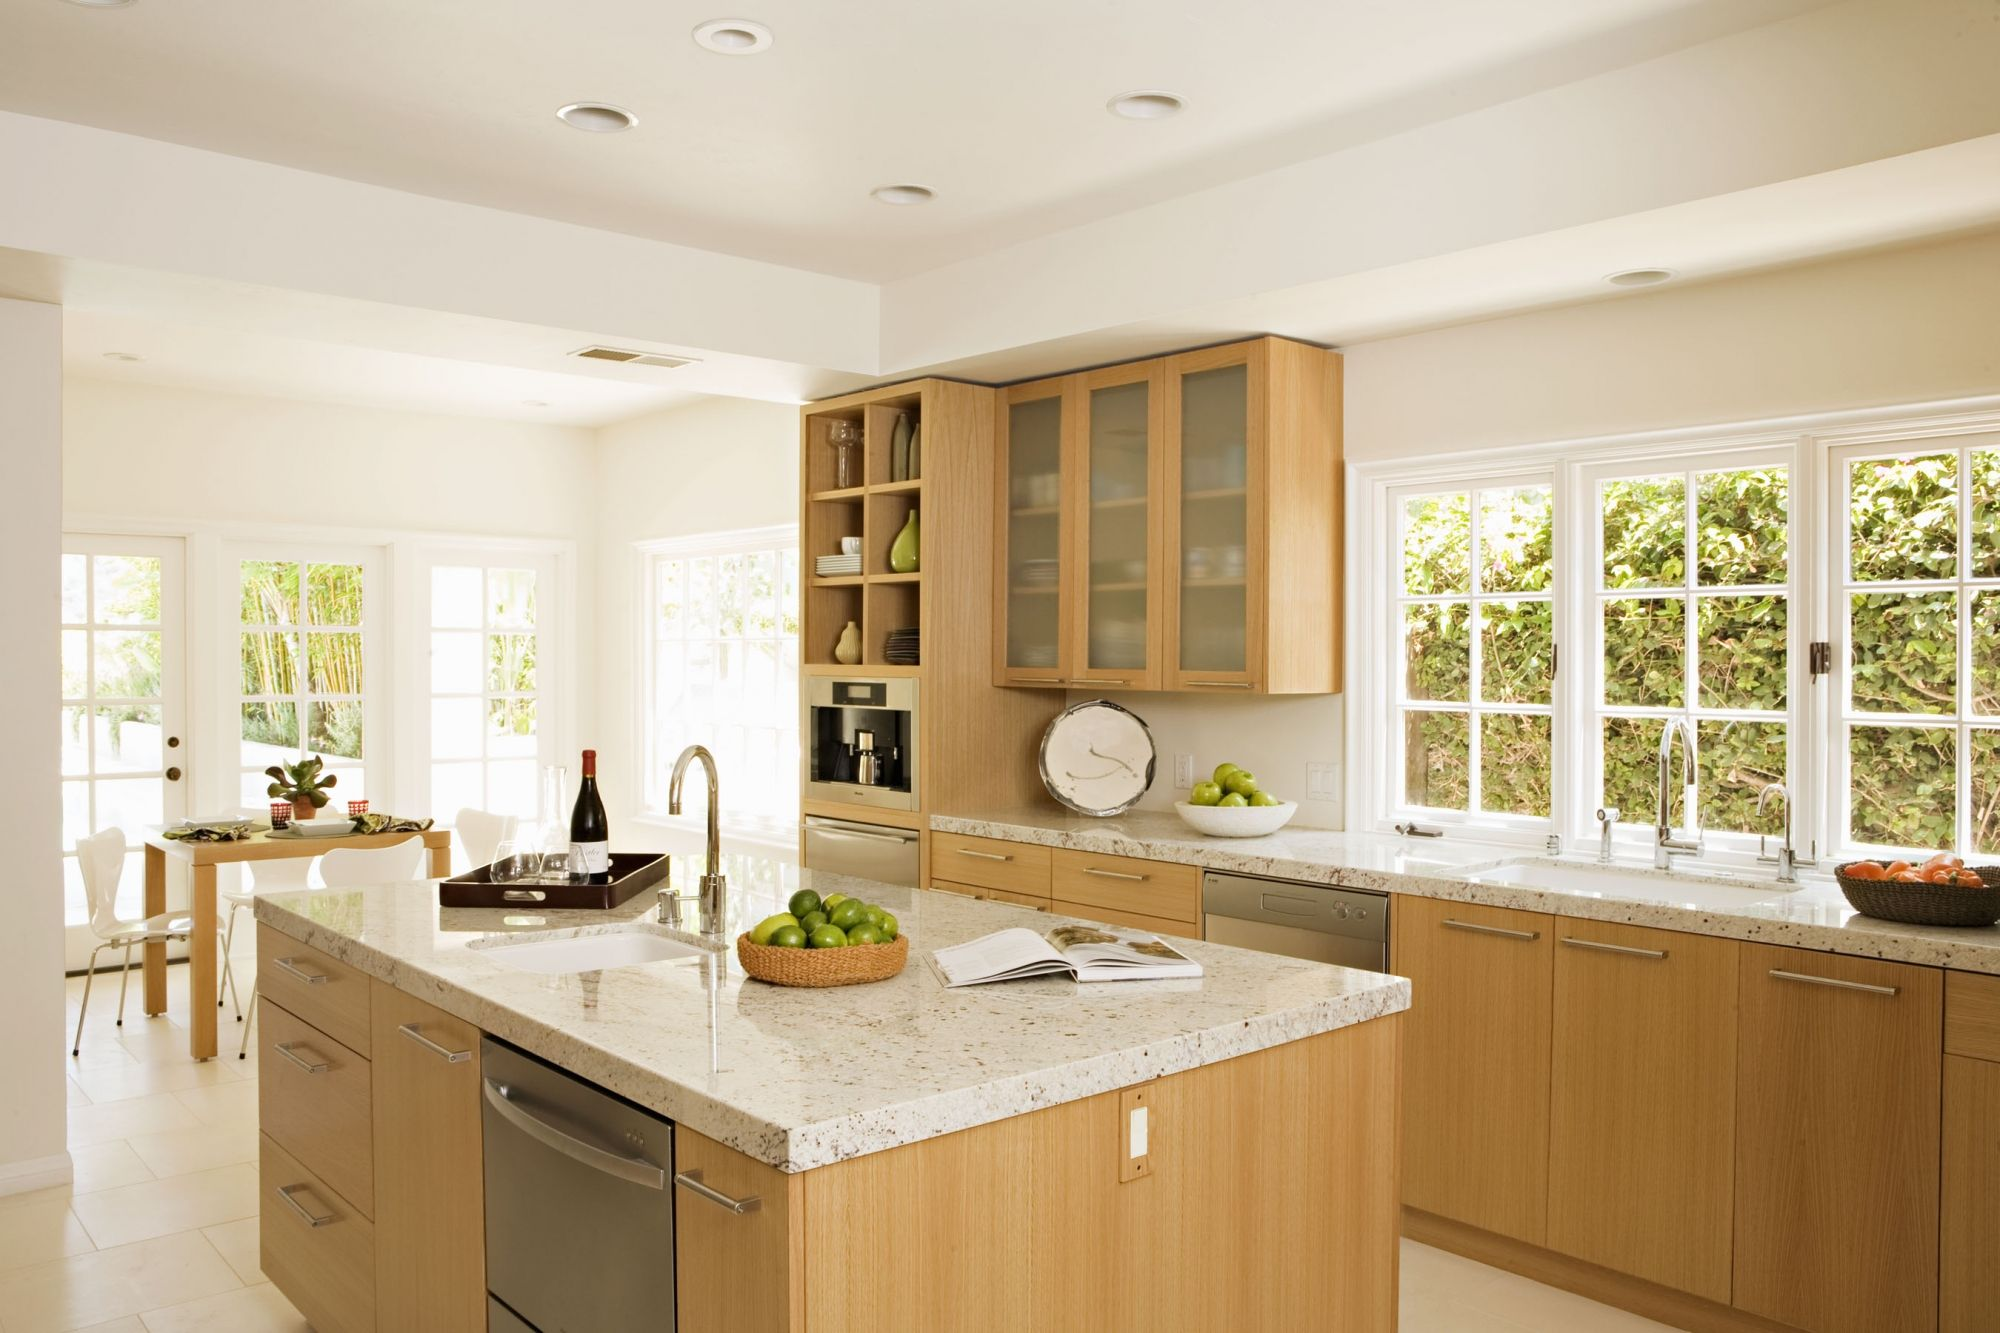 Modern Kitchen Features White Oak Cabinet White Limestone Floors And Very Clean Maple Kitchen Cabinets Kitchen Remodel Countertops Kitchen Backsplash Designs